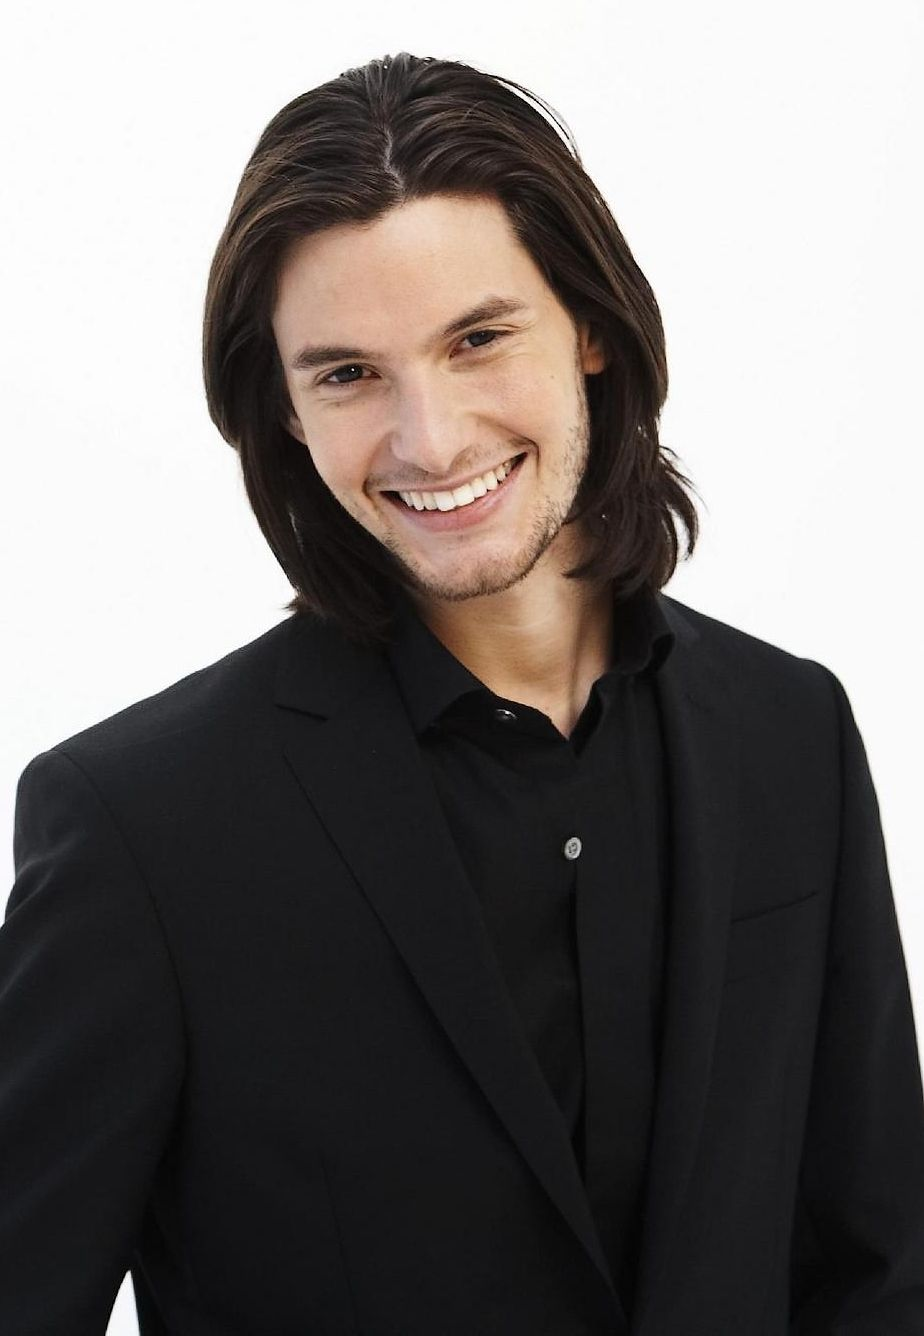 ben barnes was/were